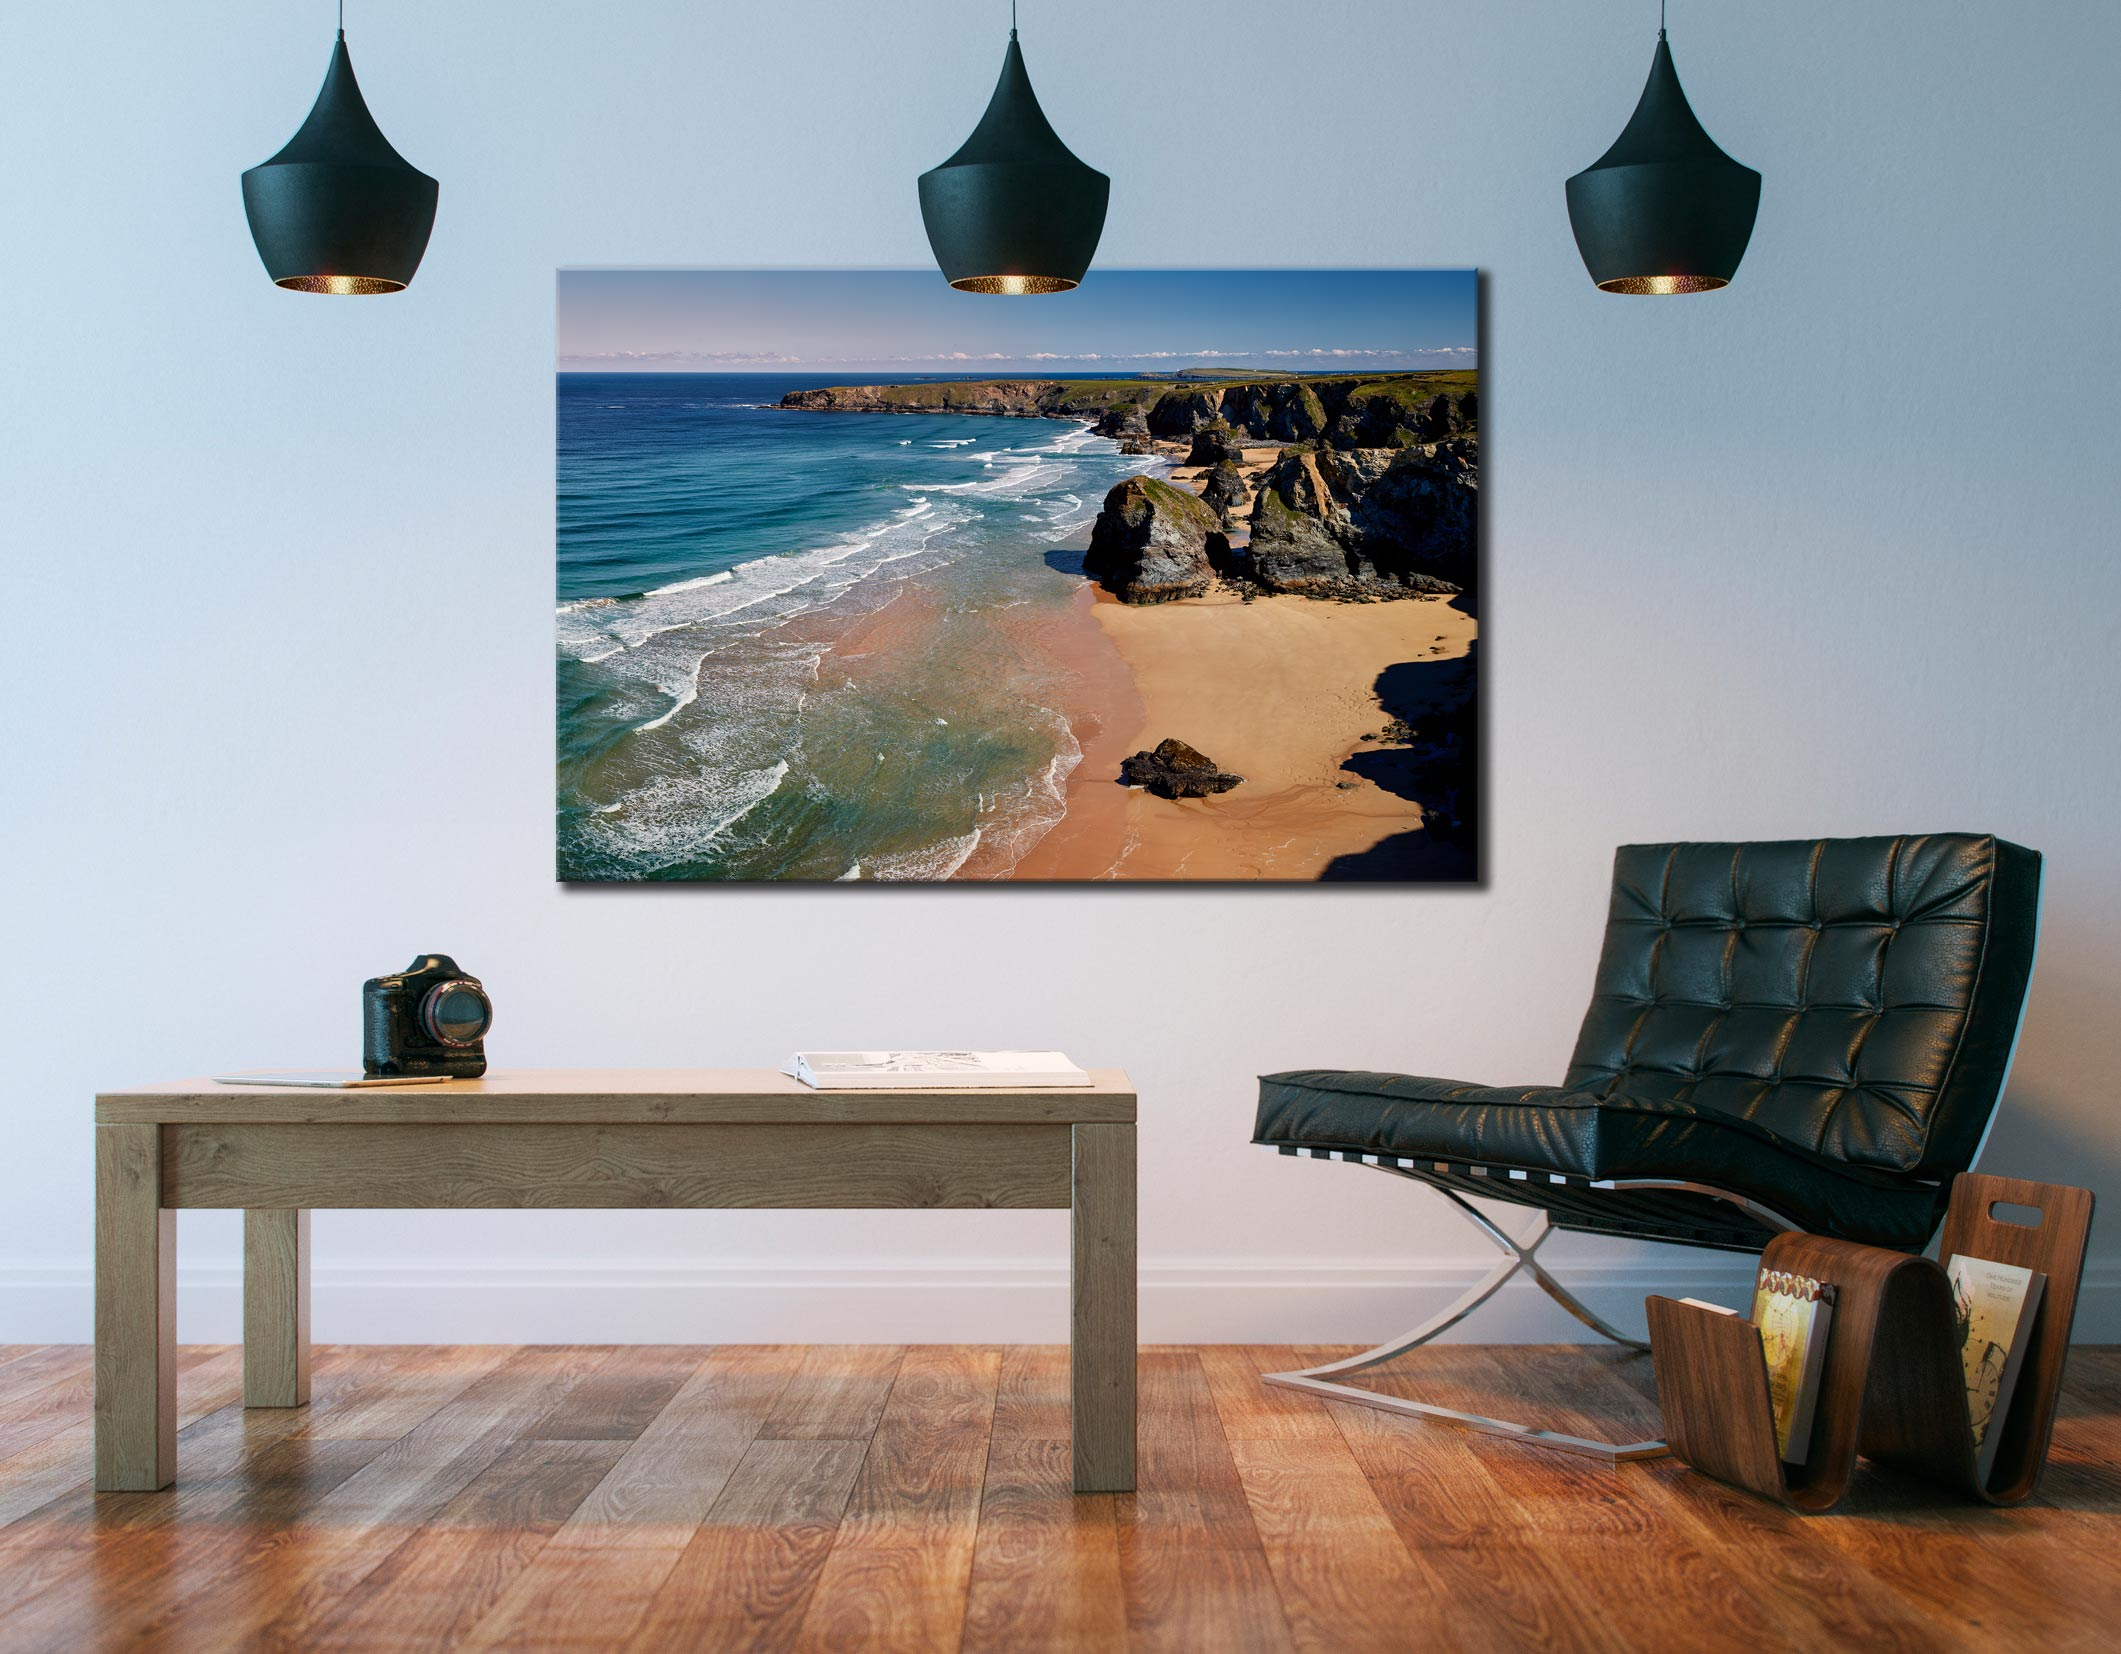 Green Ocean at Bedruthan Steps - Cornwall Canvas on Wall